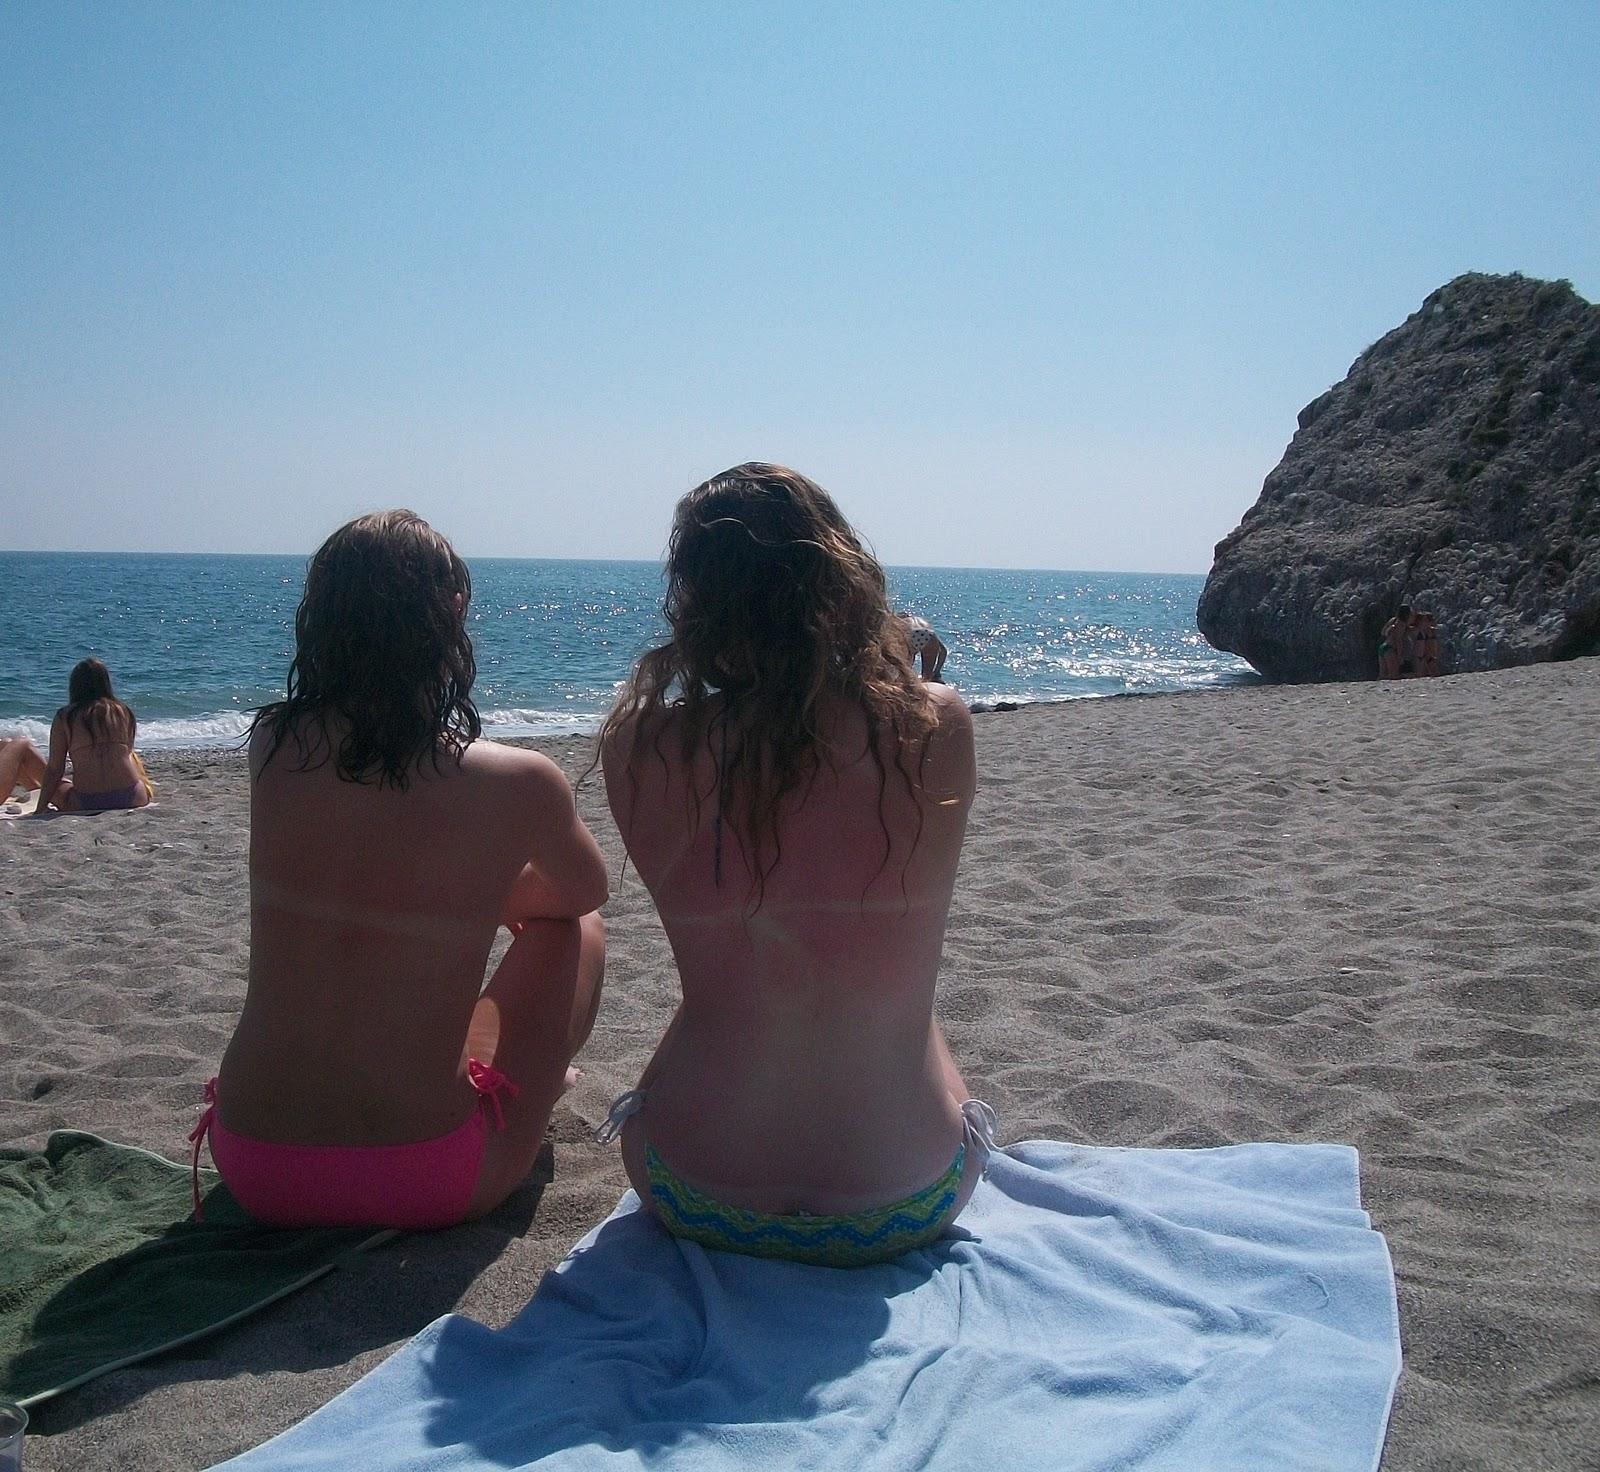 Nerja Spain Is One Of The Worlds Treasures And Not Just Because One Can Go Topless On The Beach Though Thats A Plus Of Course Such Freedom